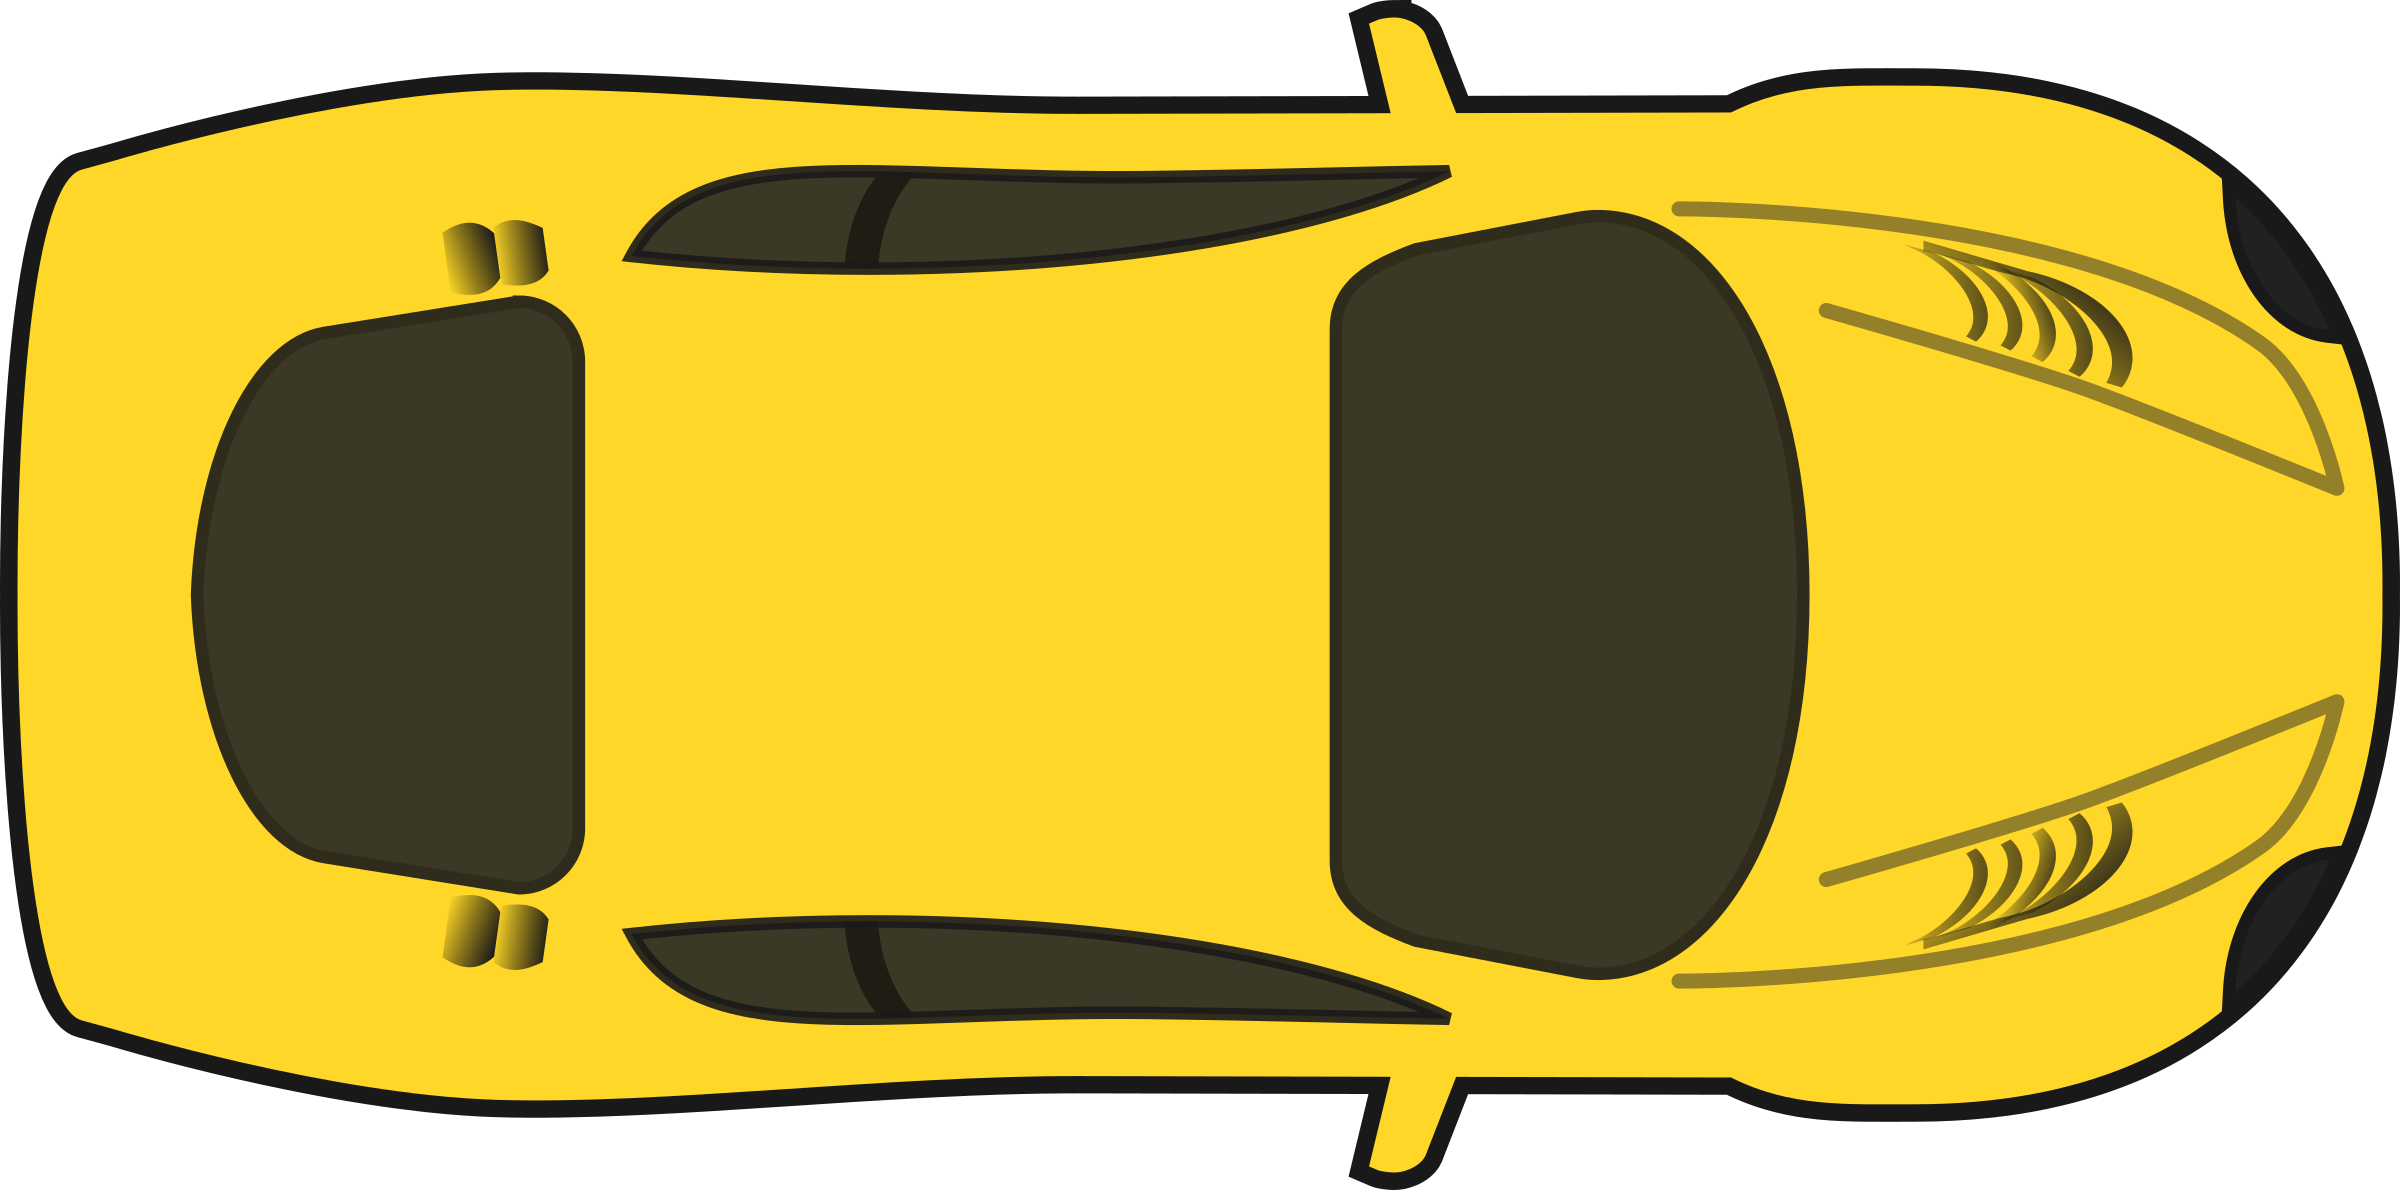 Yellow Racing Car (Top View) by qubodup